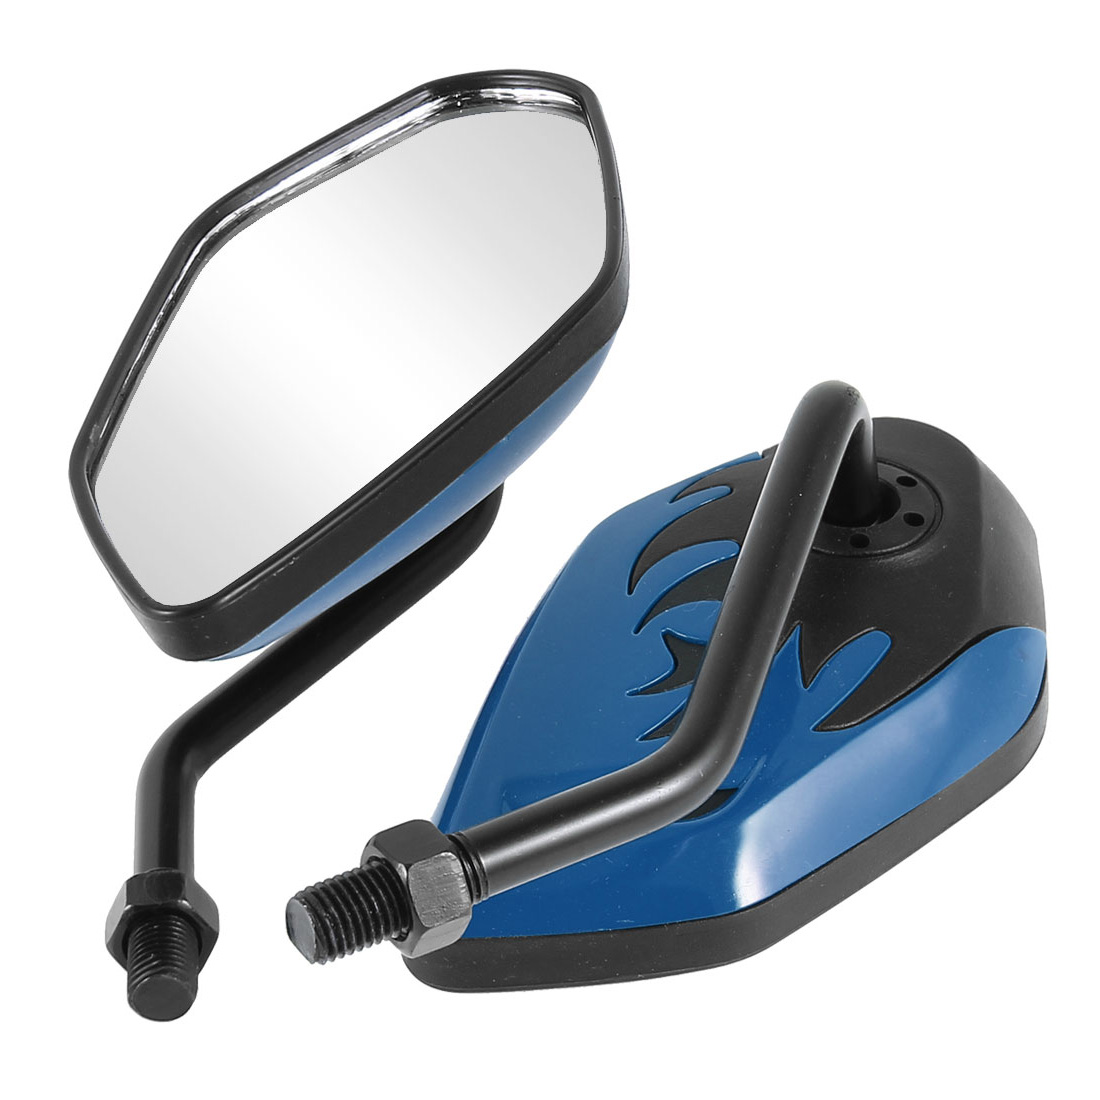 2 Pcs Motorcycle Motorbike Blind Spot Blindspot Rear View Mirror Black Blue